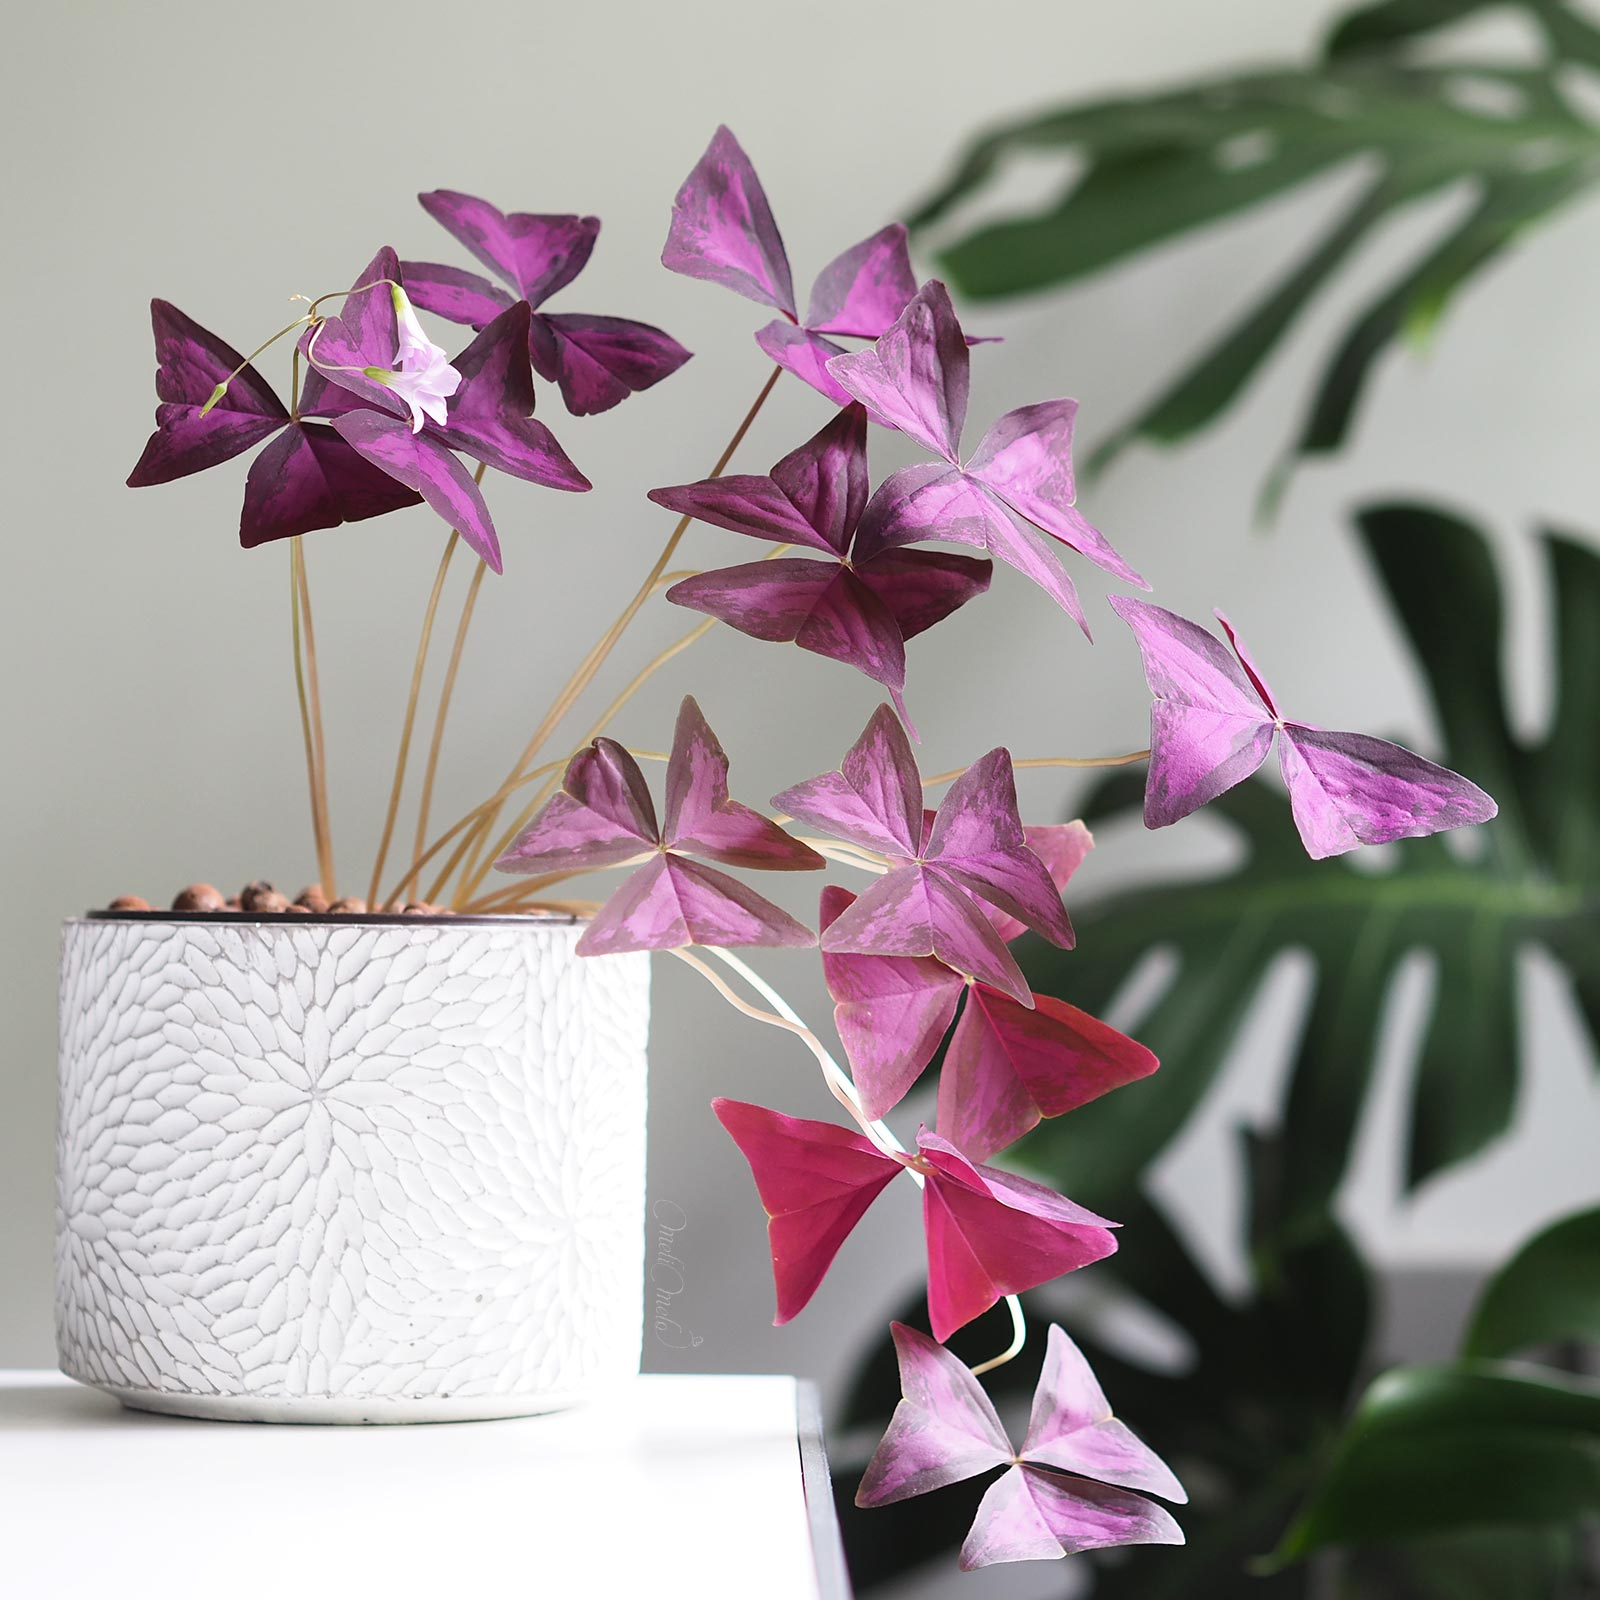 oxalis-pourpre-triangularis-entretien-laboutiquedemelimelo